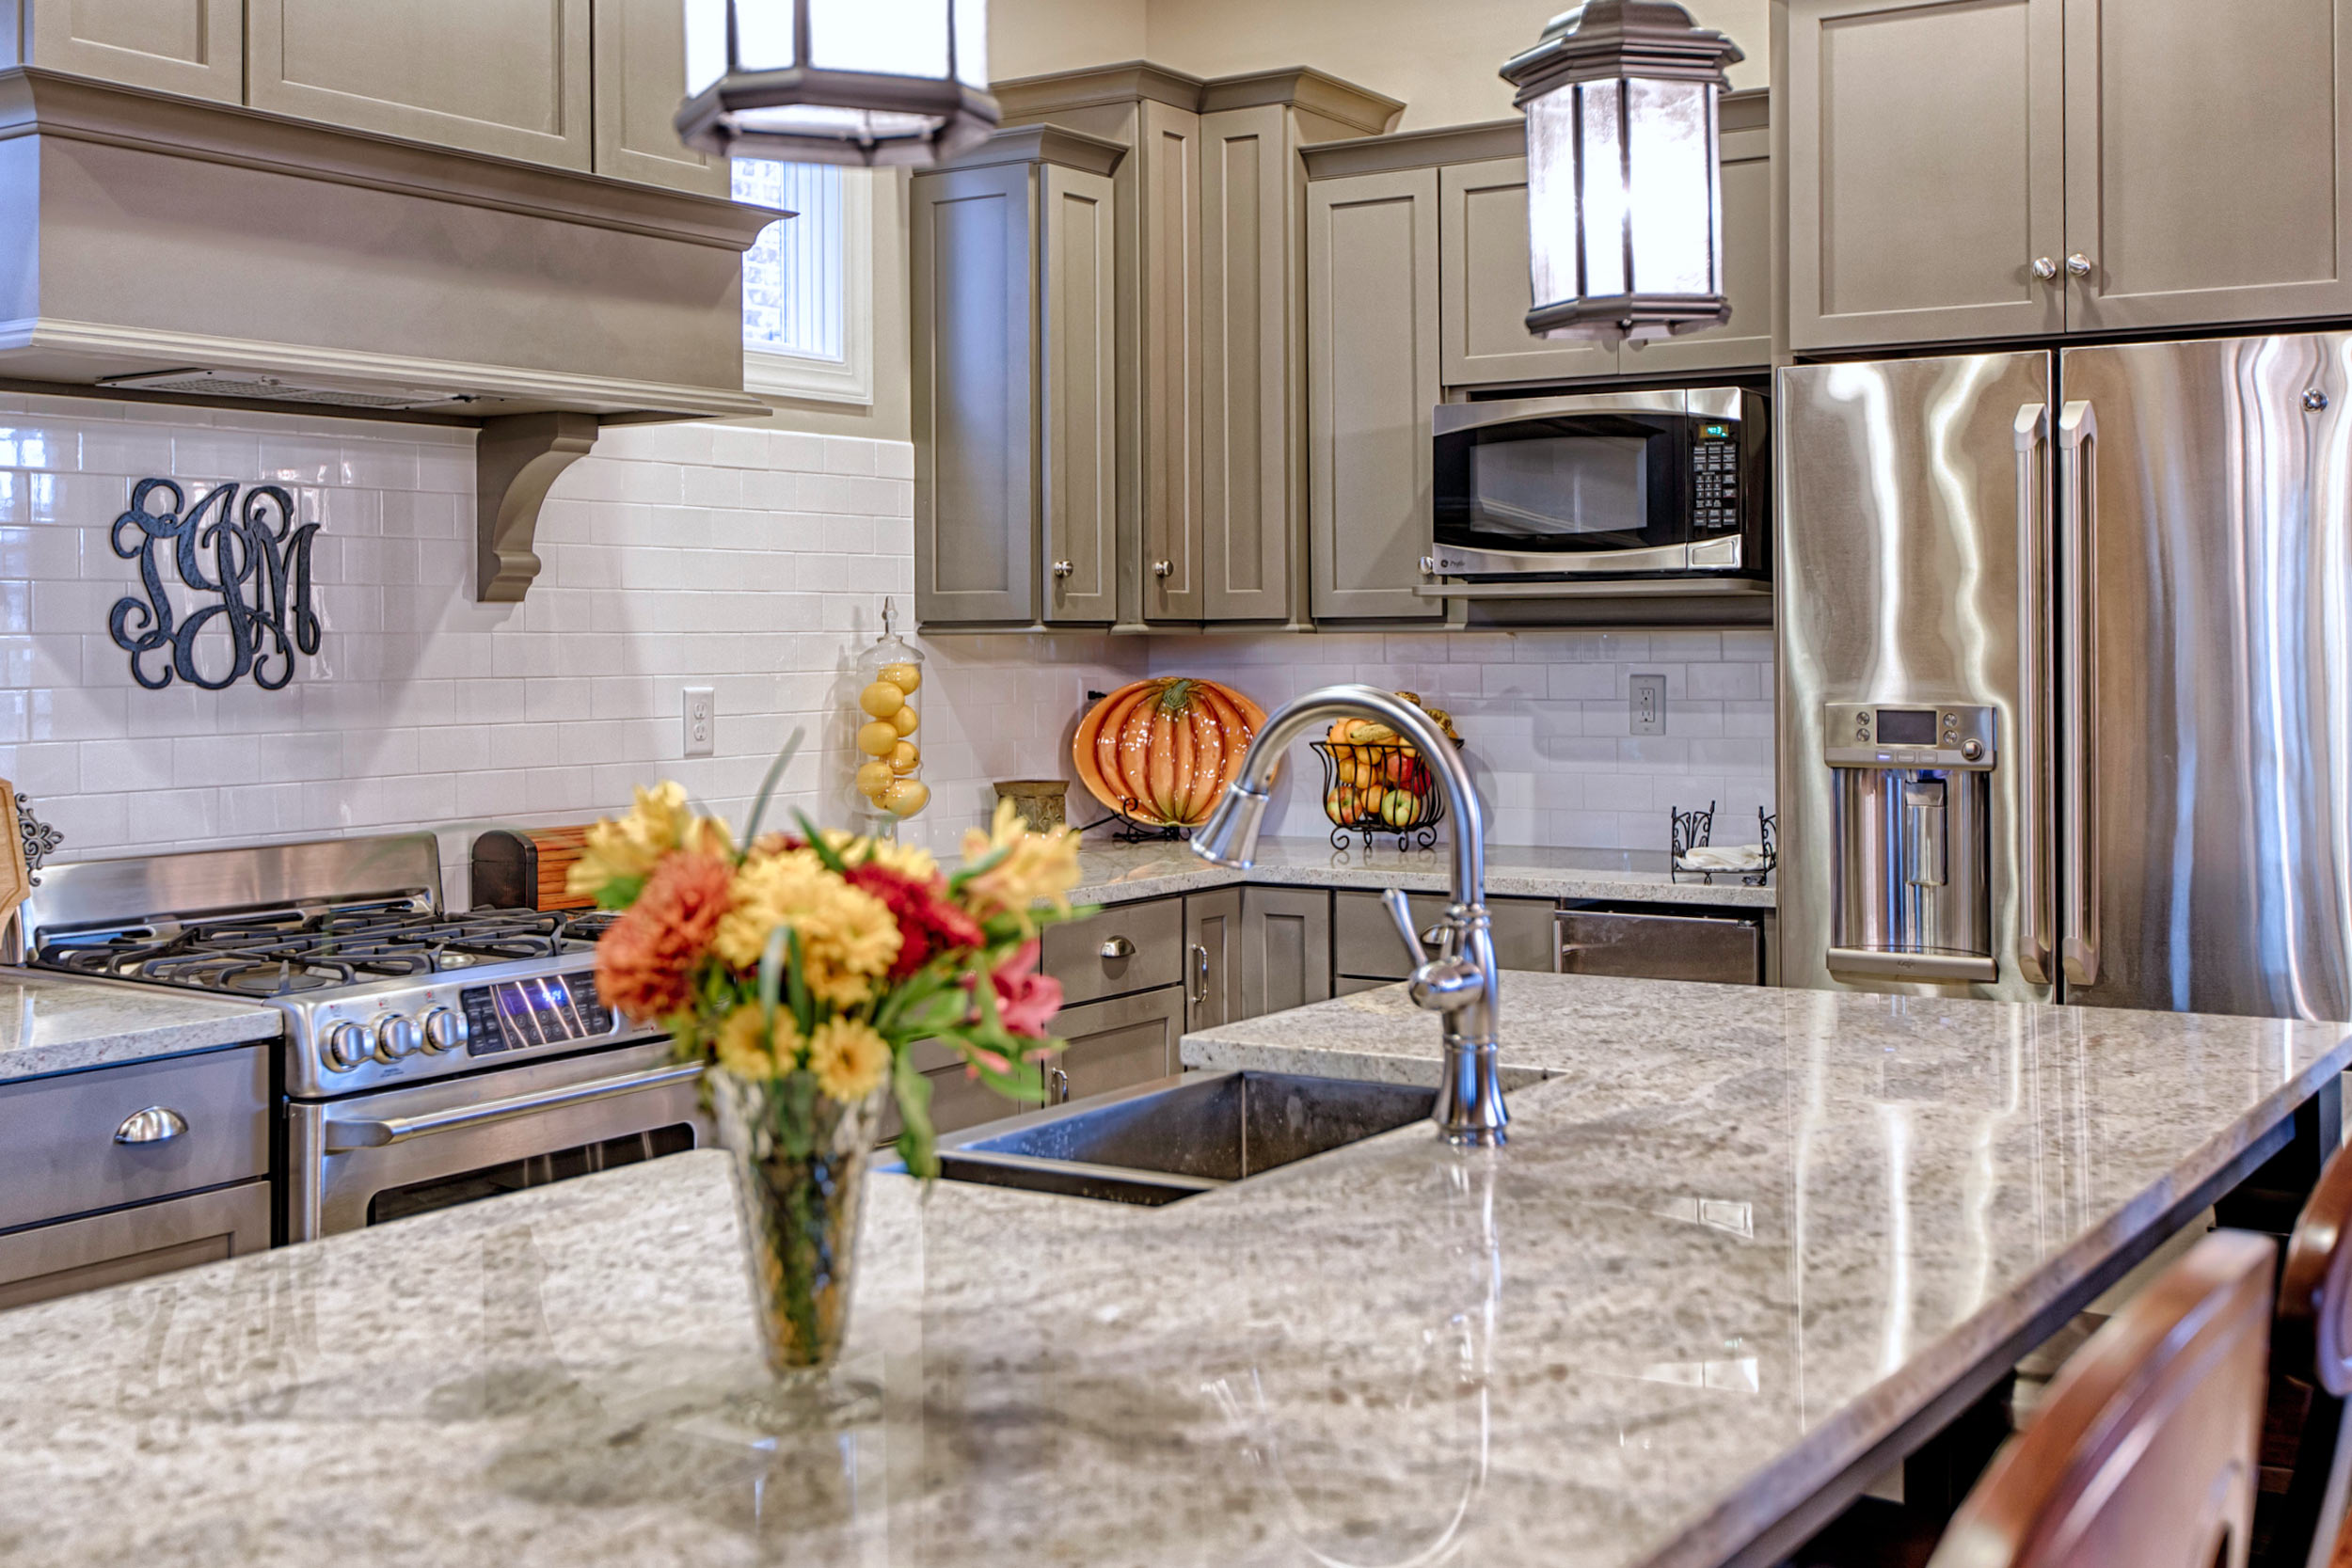 Consider Dark Kitchen Cabinets When Remodeling